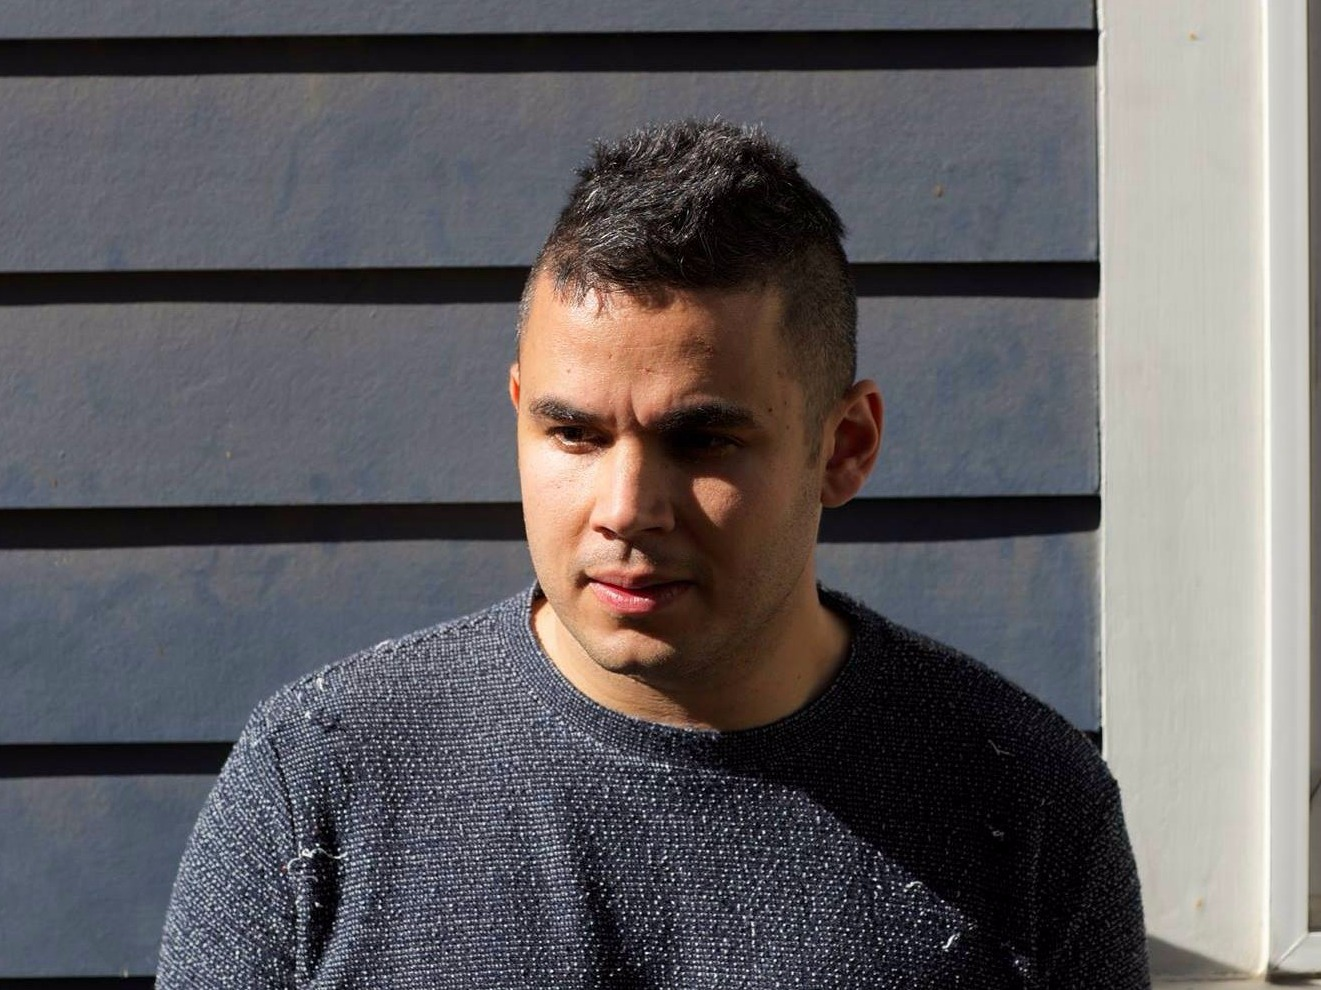 Rostam Brings 'Half-Light' To Brooklyn with Special Guests